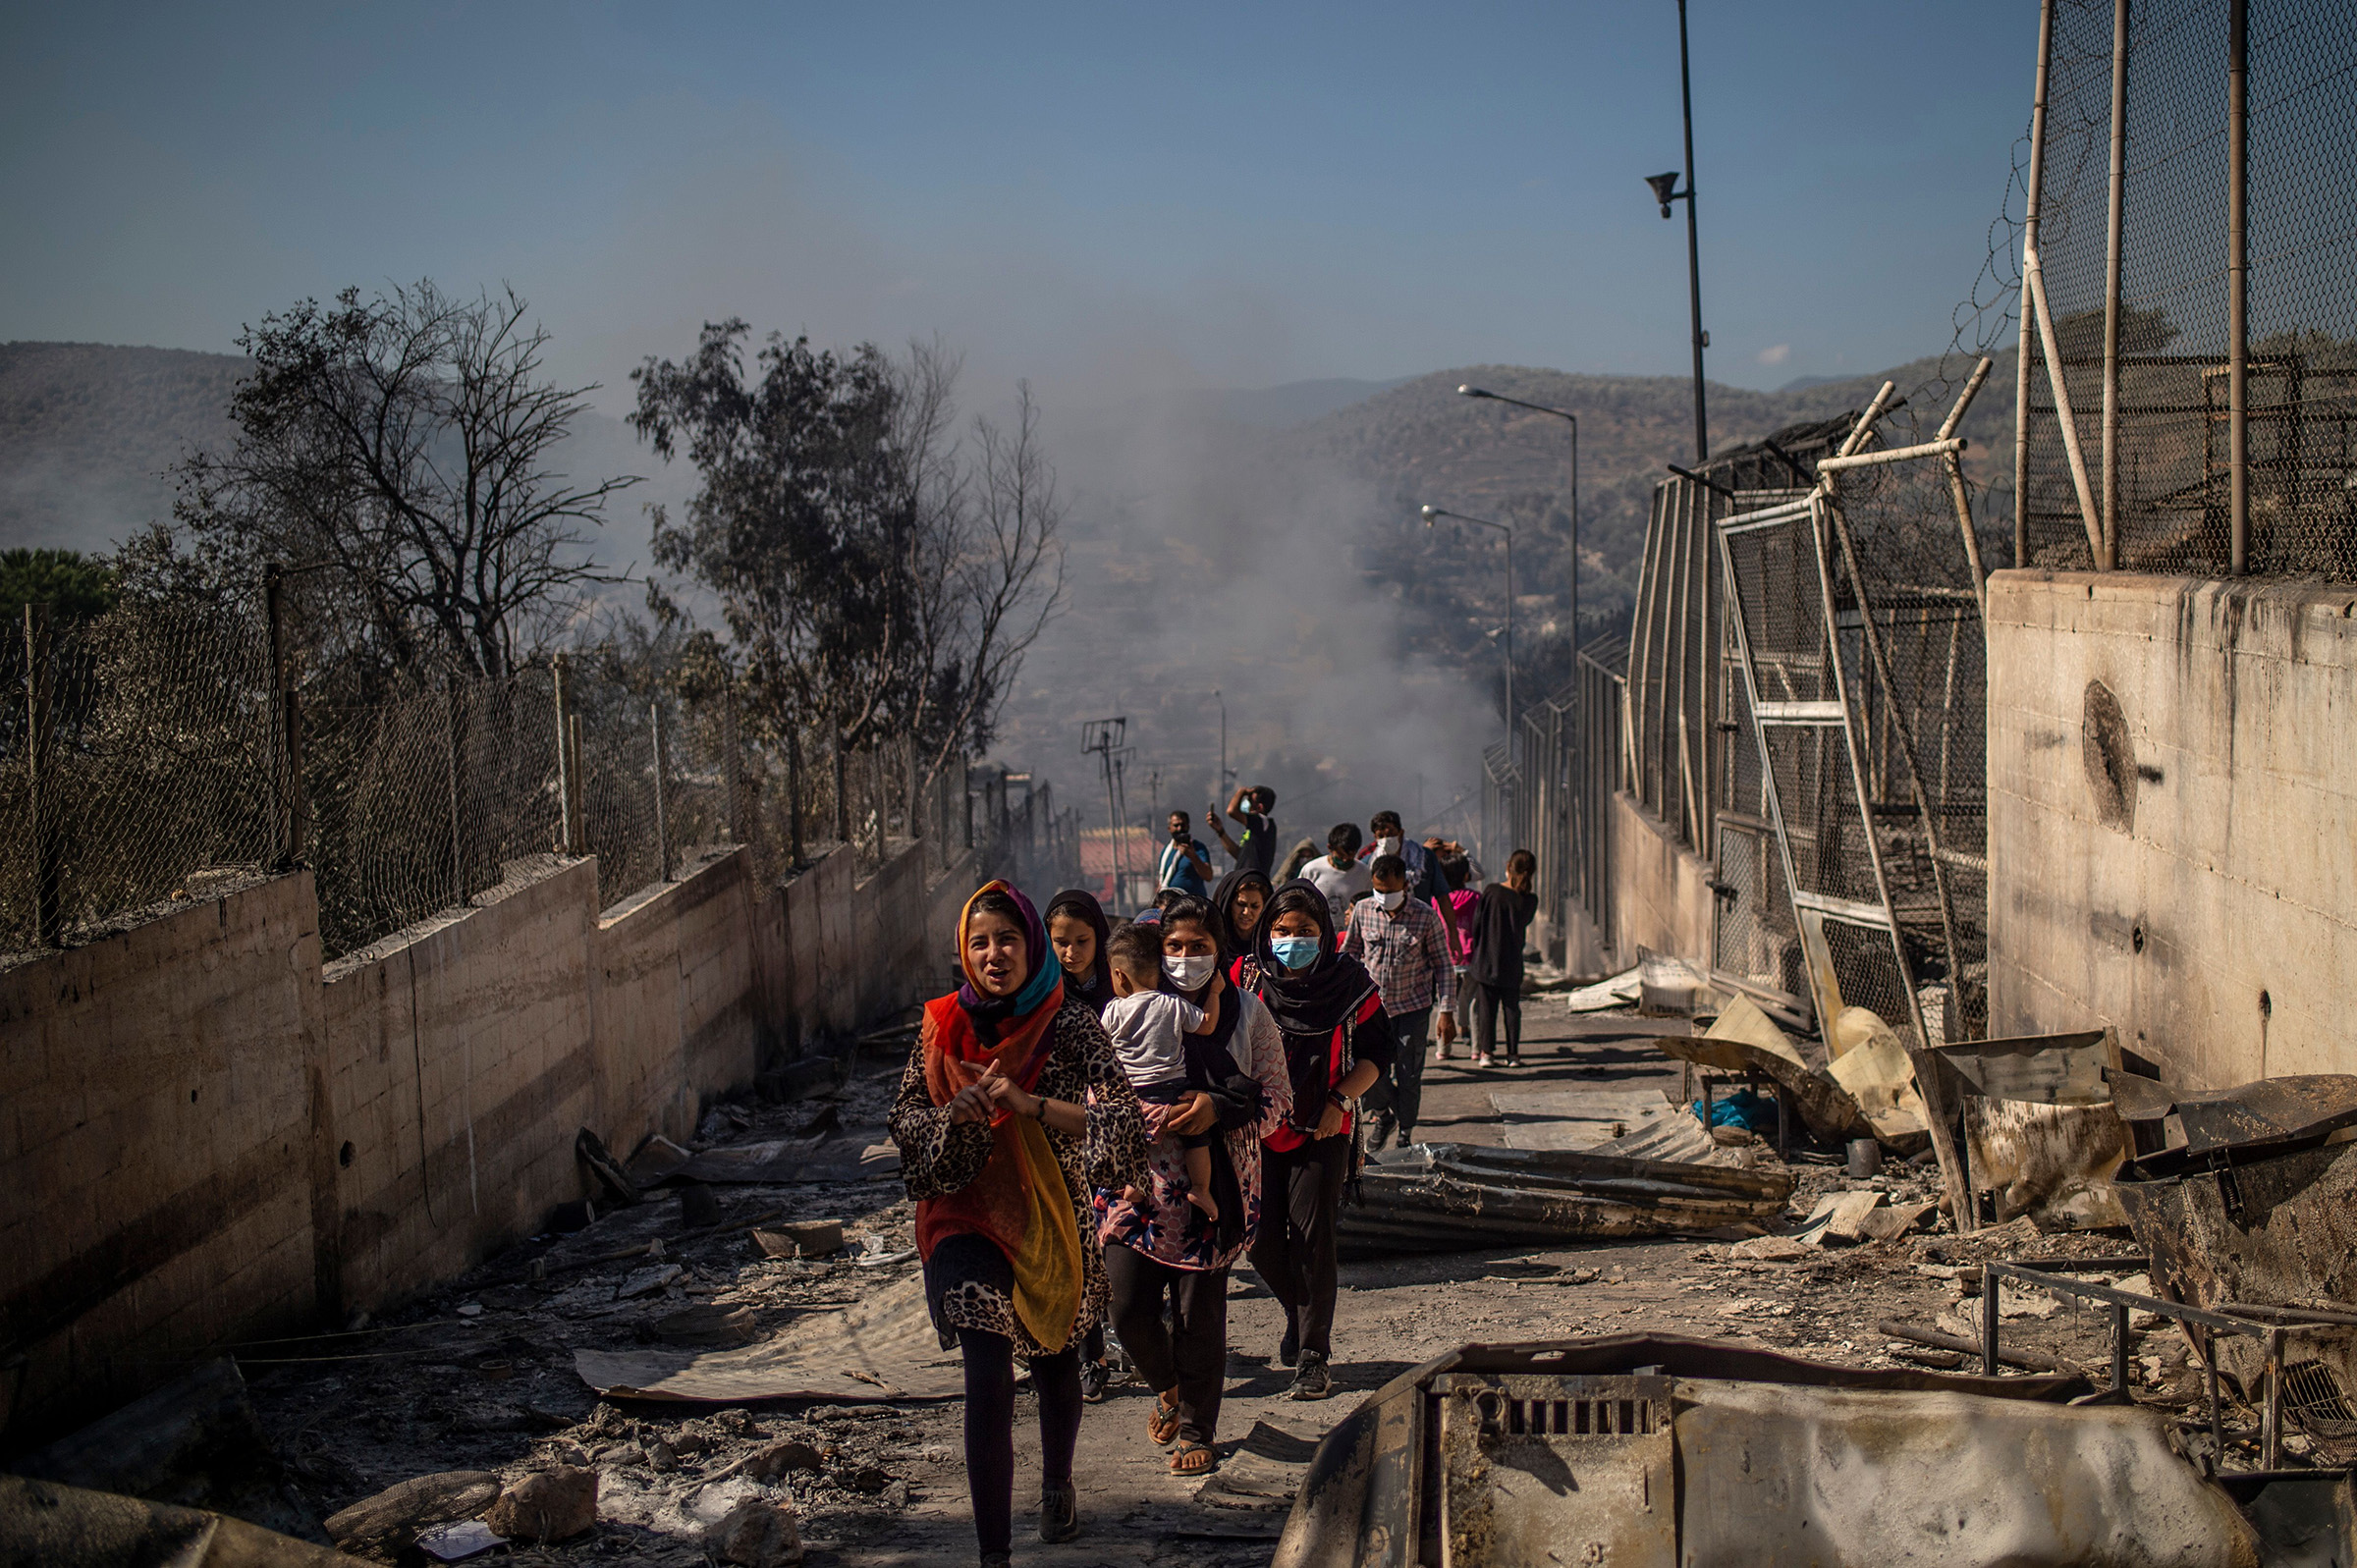 People walk in the burnt camp of Moria on the island of Lesbos after a major fire broke out, on Sept. 9, 2020.